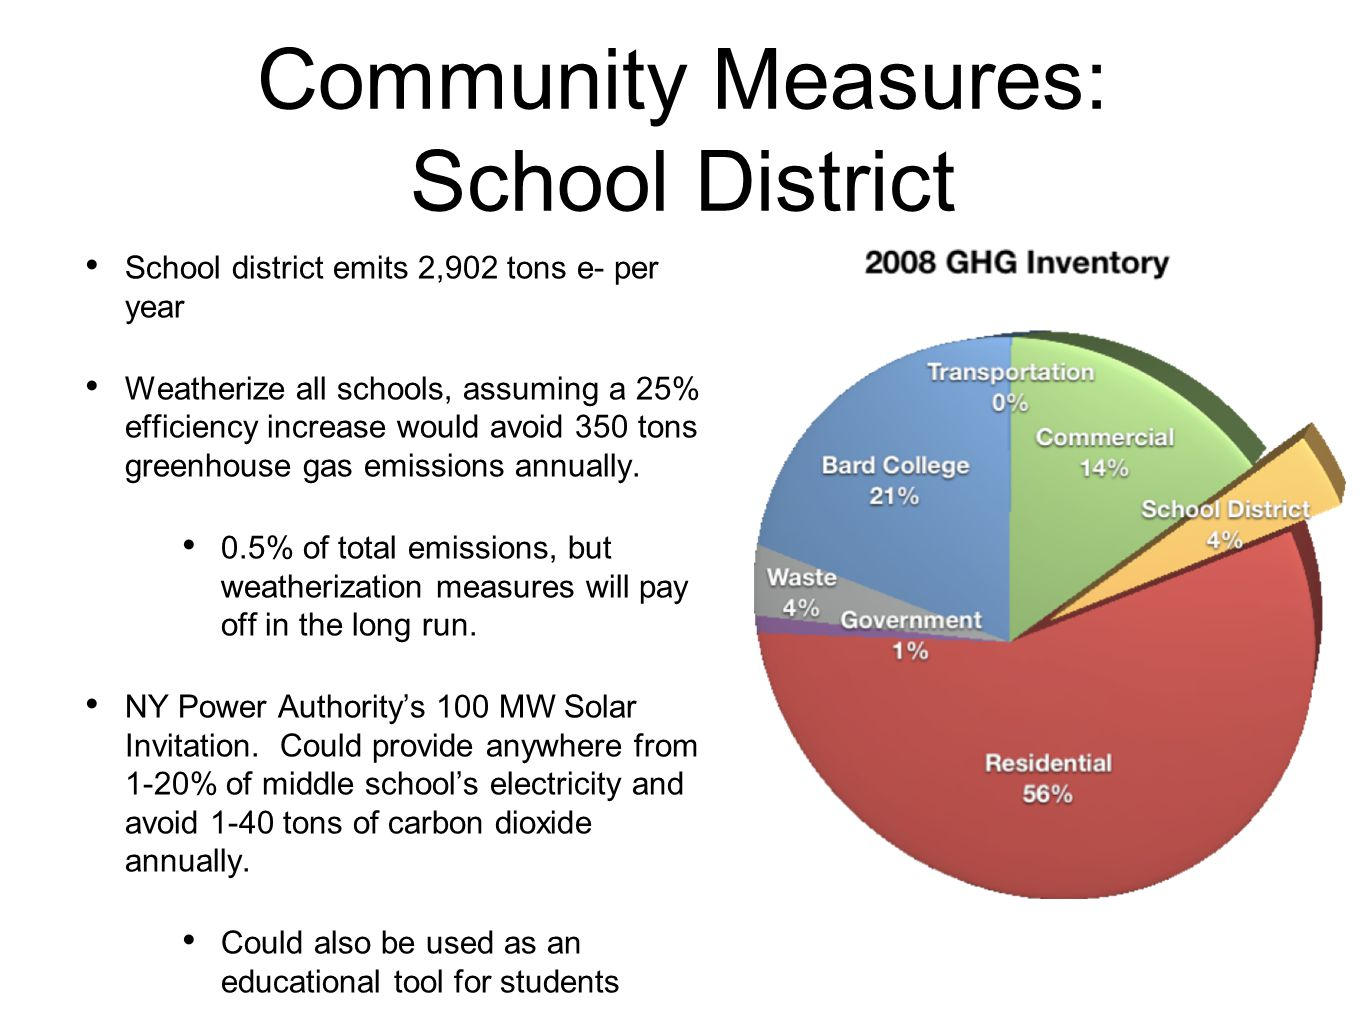 Community Measures: School District School district emits 2,902 tons e- per year Weatherize all schools, assuming a 25% efficiency increase would avoi